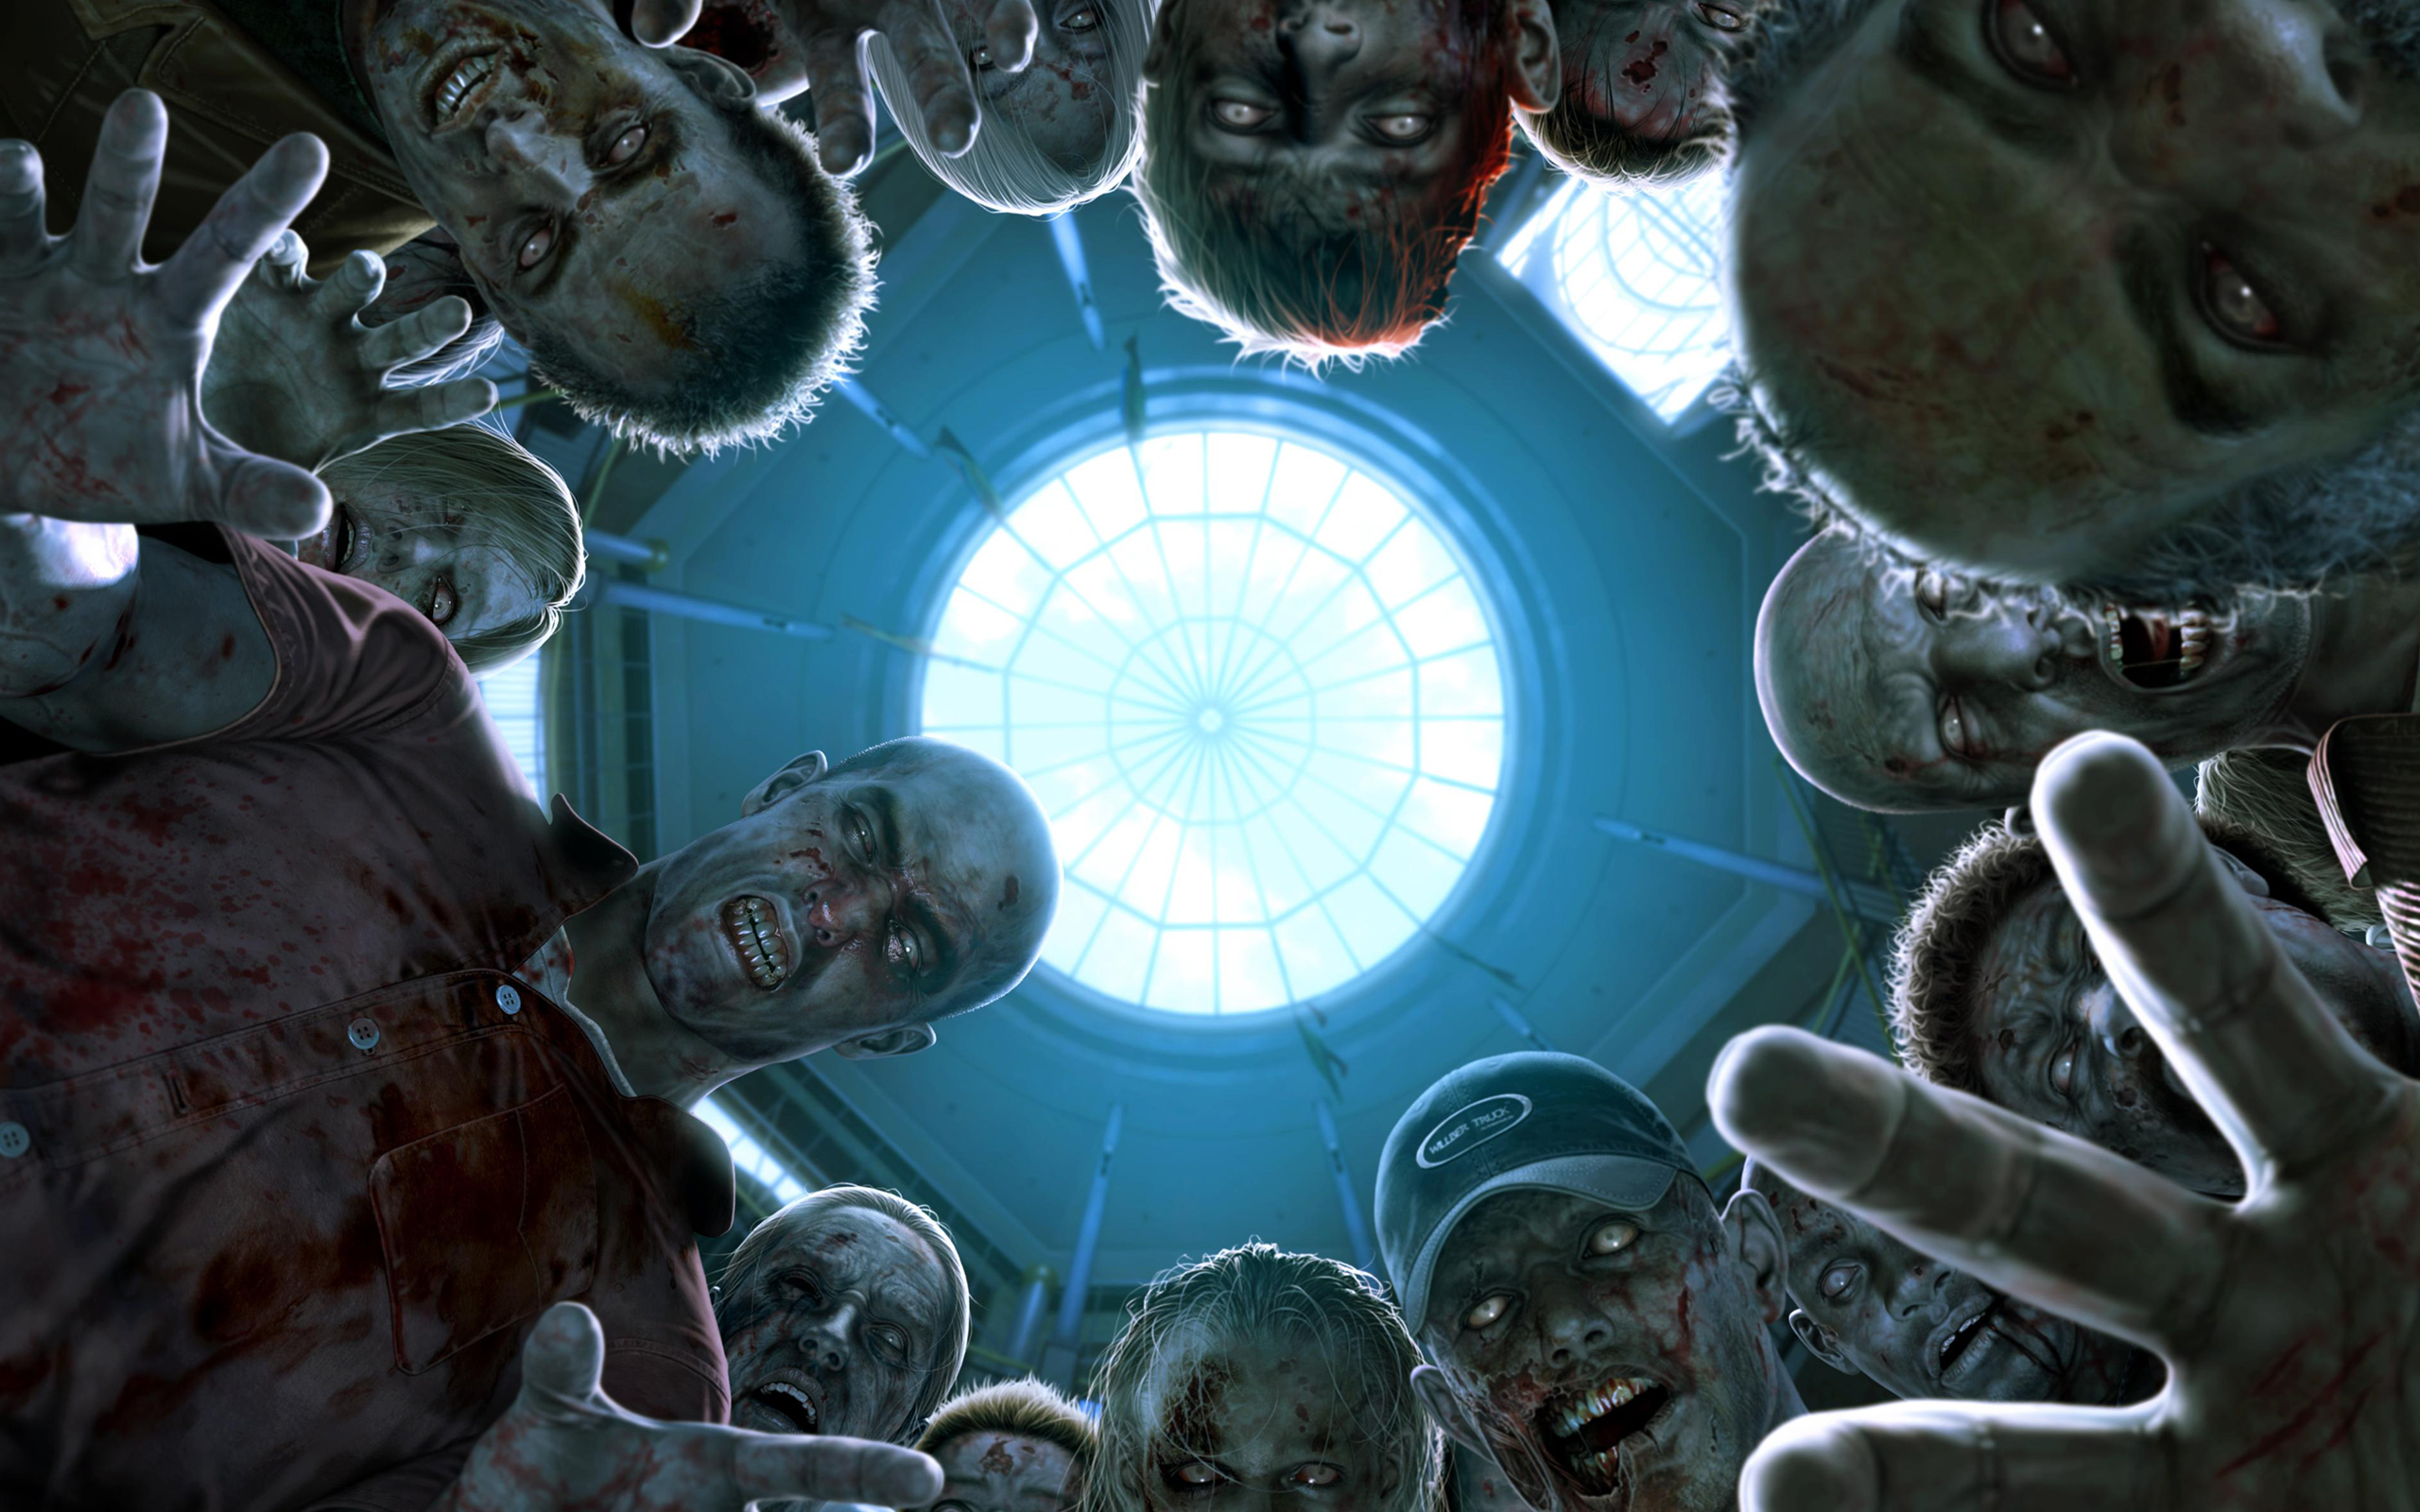 Zombies Wallpapers, Photos And Desktop Backgrounds Up To